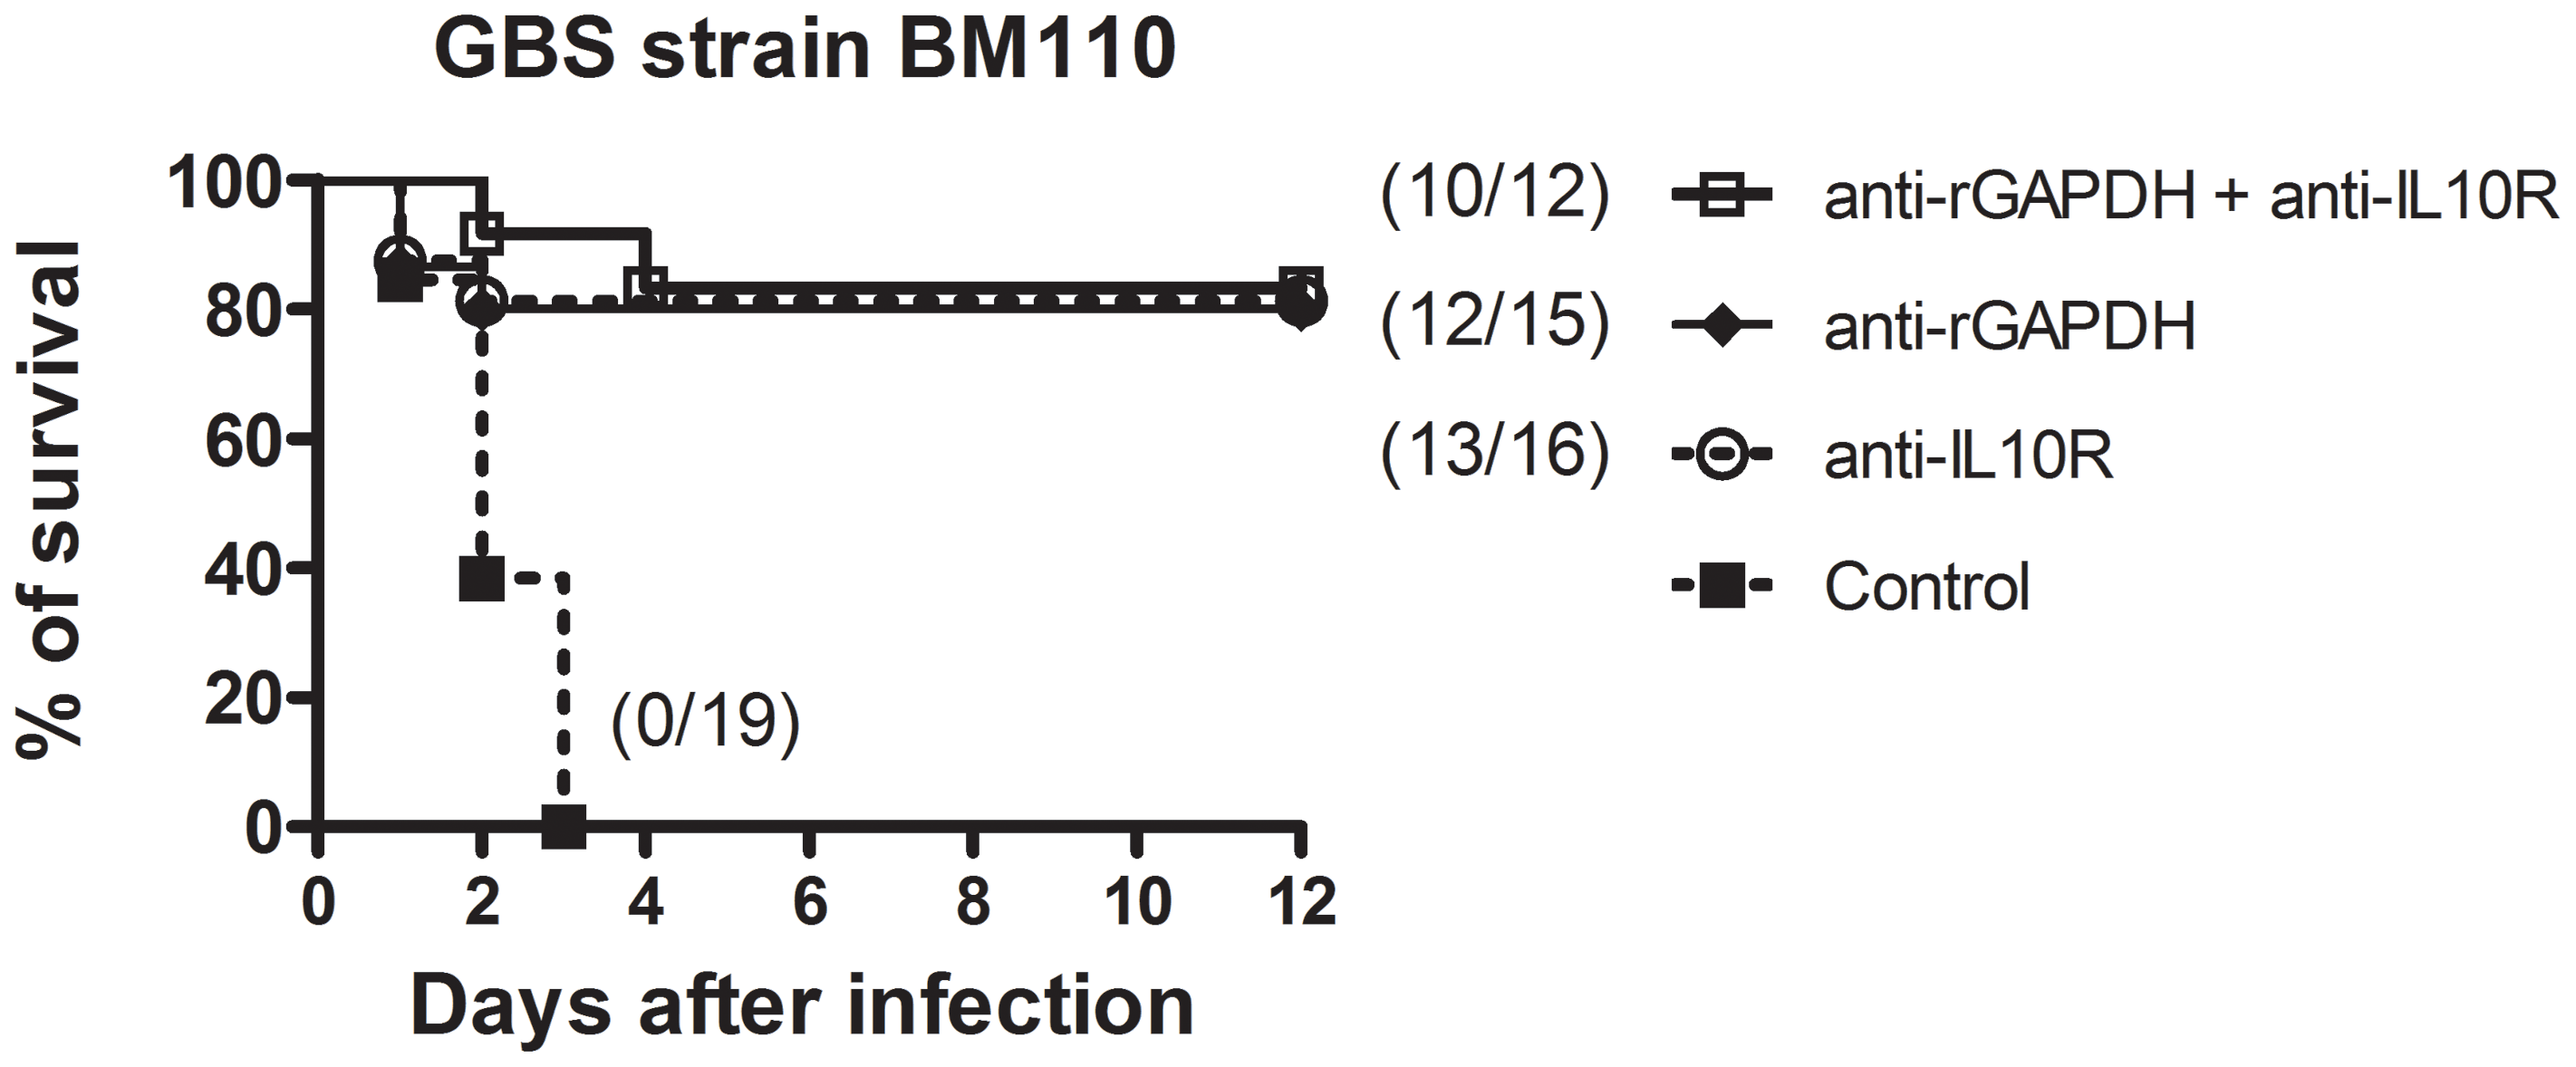 Simultaneous injection of anti-rGAPDH IgG's and anti-IL10R mAb does not increase survival of newborn mice infected with GBS BM110.